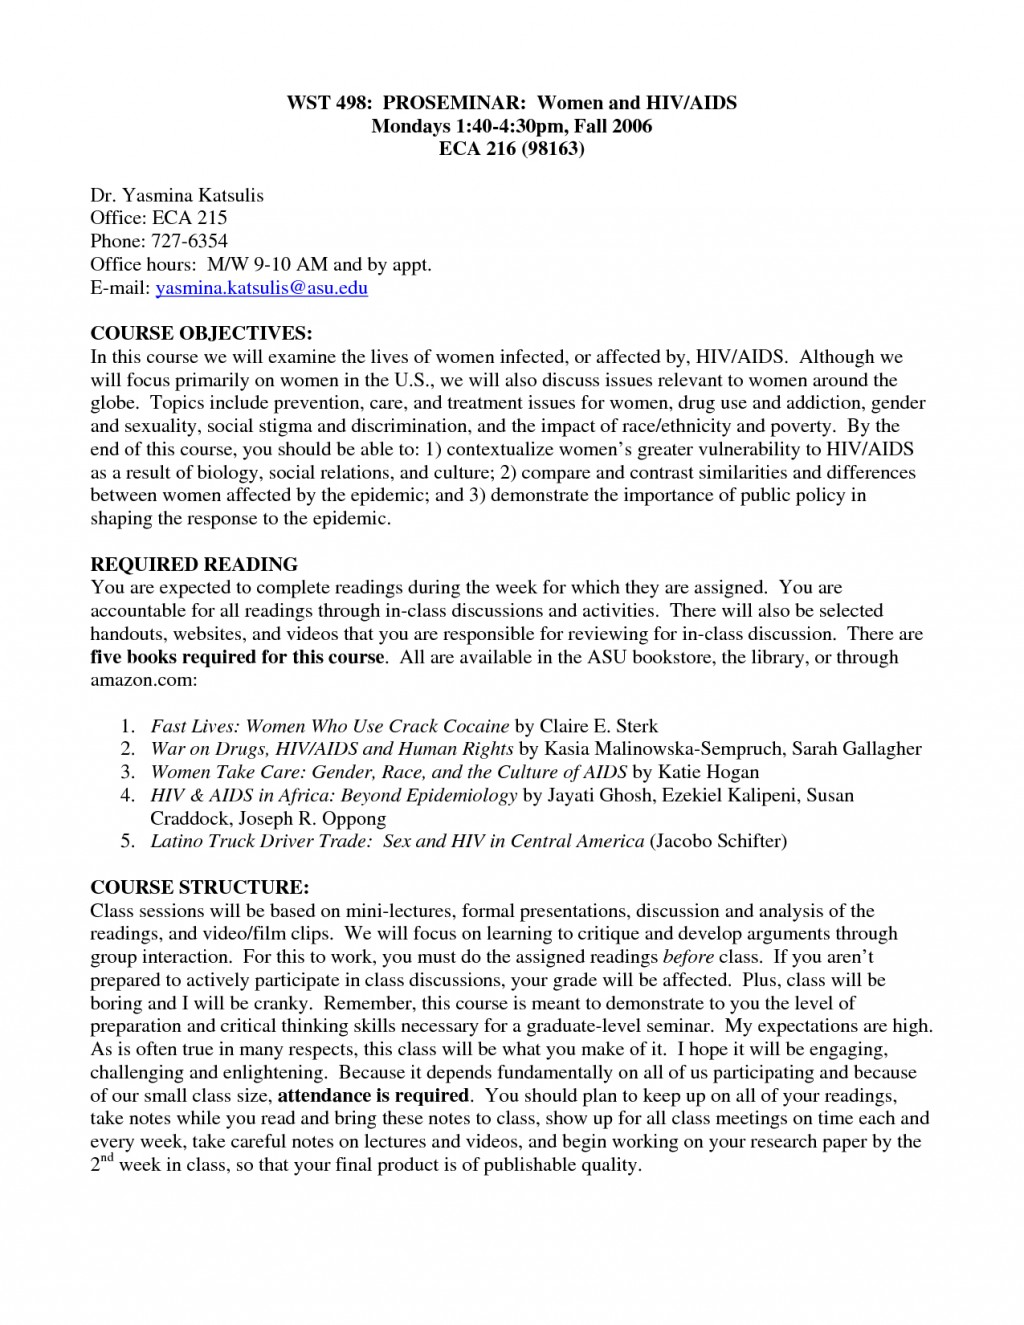 002 Research Paper Modest Proposal Topics For Essay Resume Boat Jeremyeaton Co Formidable A Large